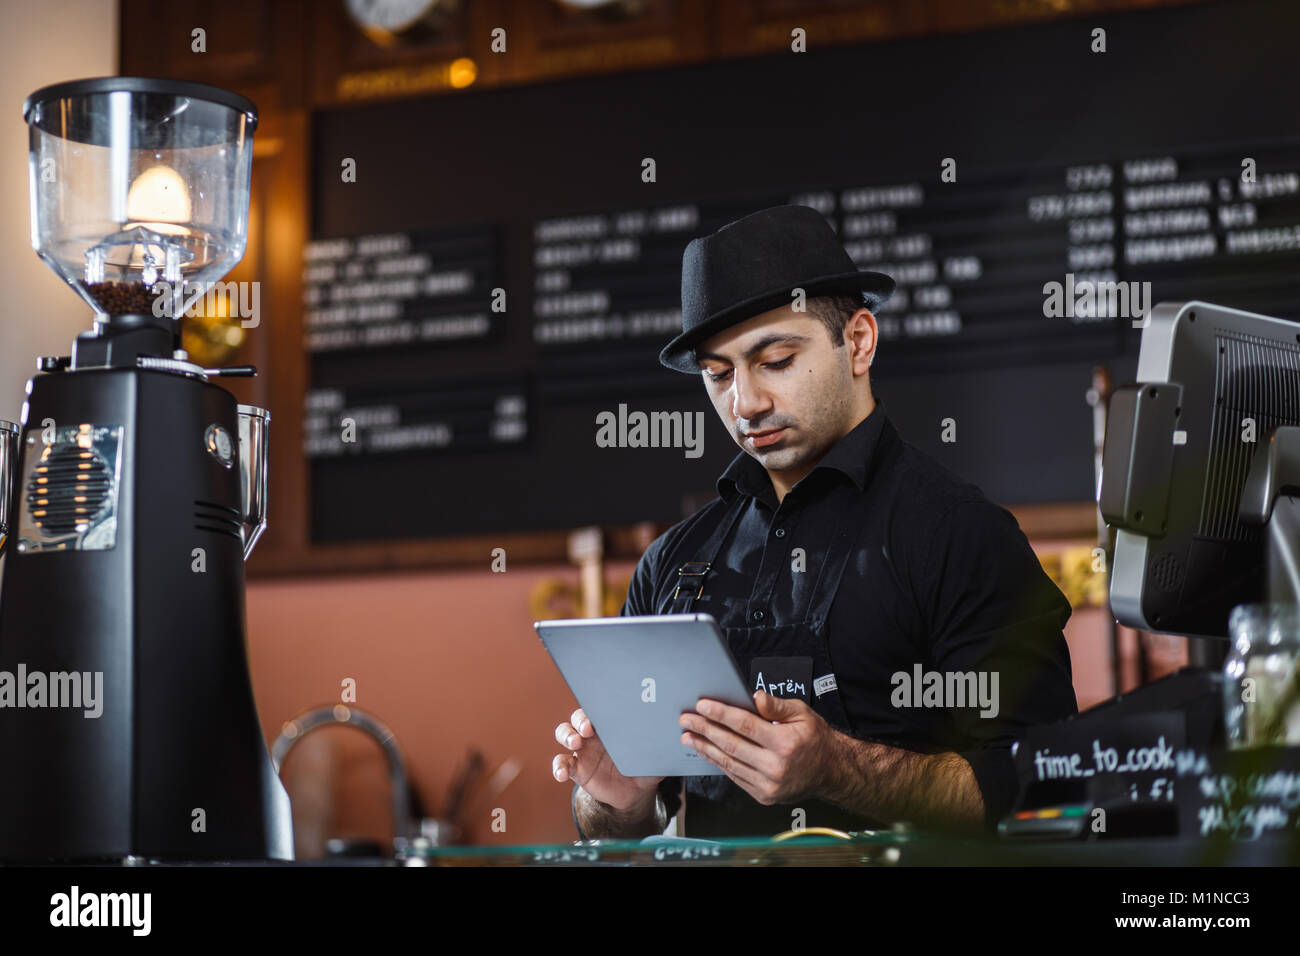 Portrait de barista holding digital tablet in coffee shop. Photo Stock